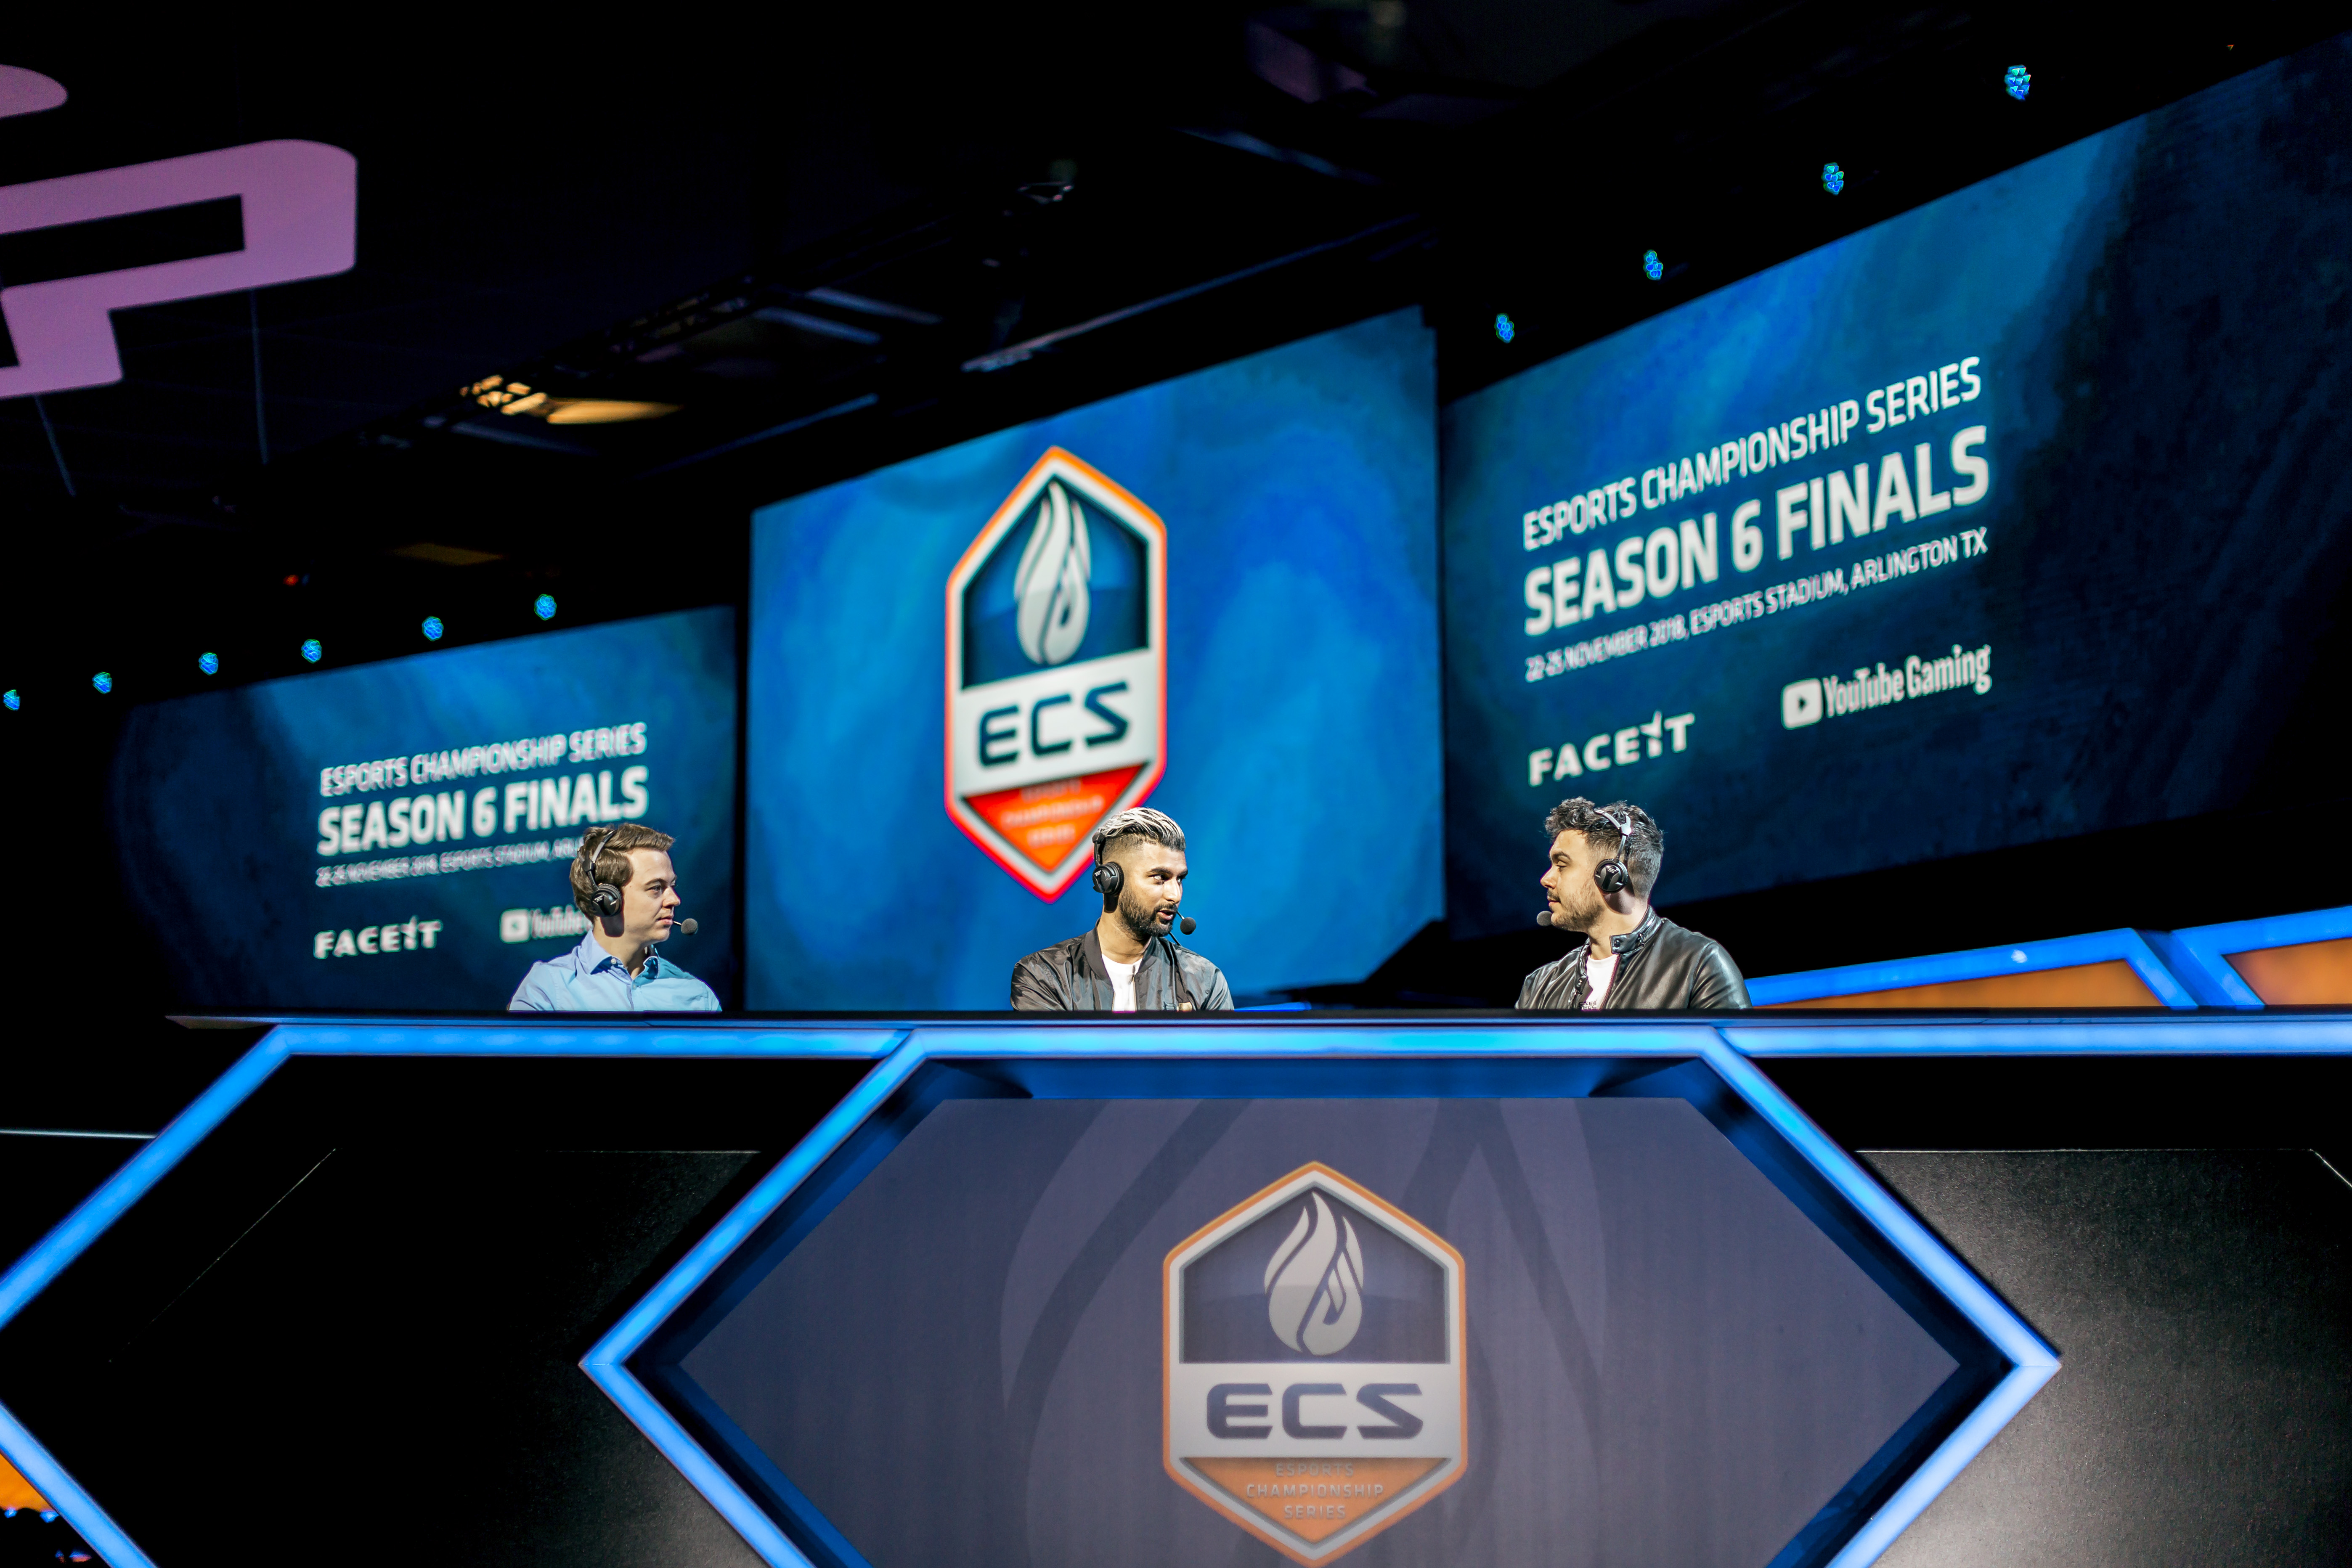 Esports Stadium In Arlington | Gamers, Tournaments & Competitions